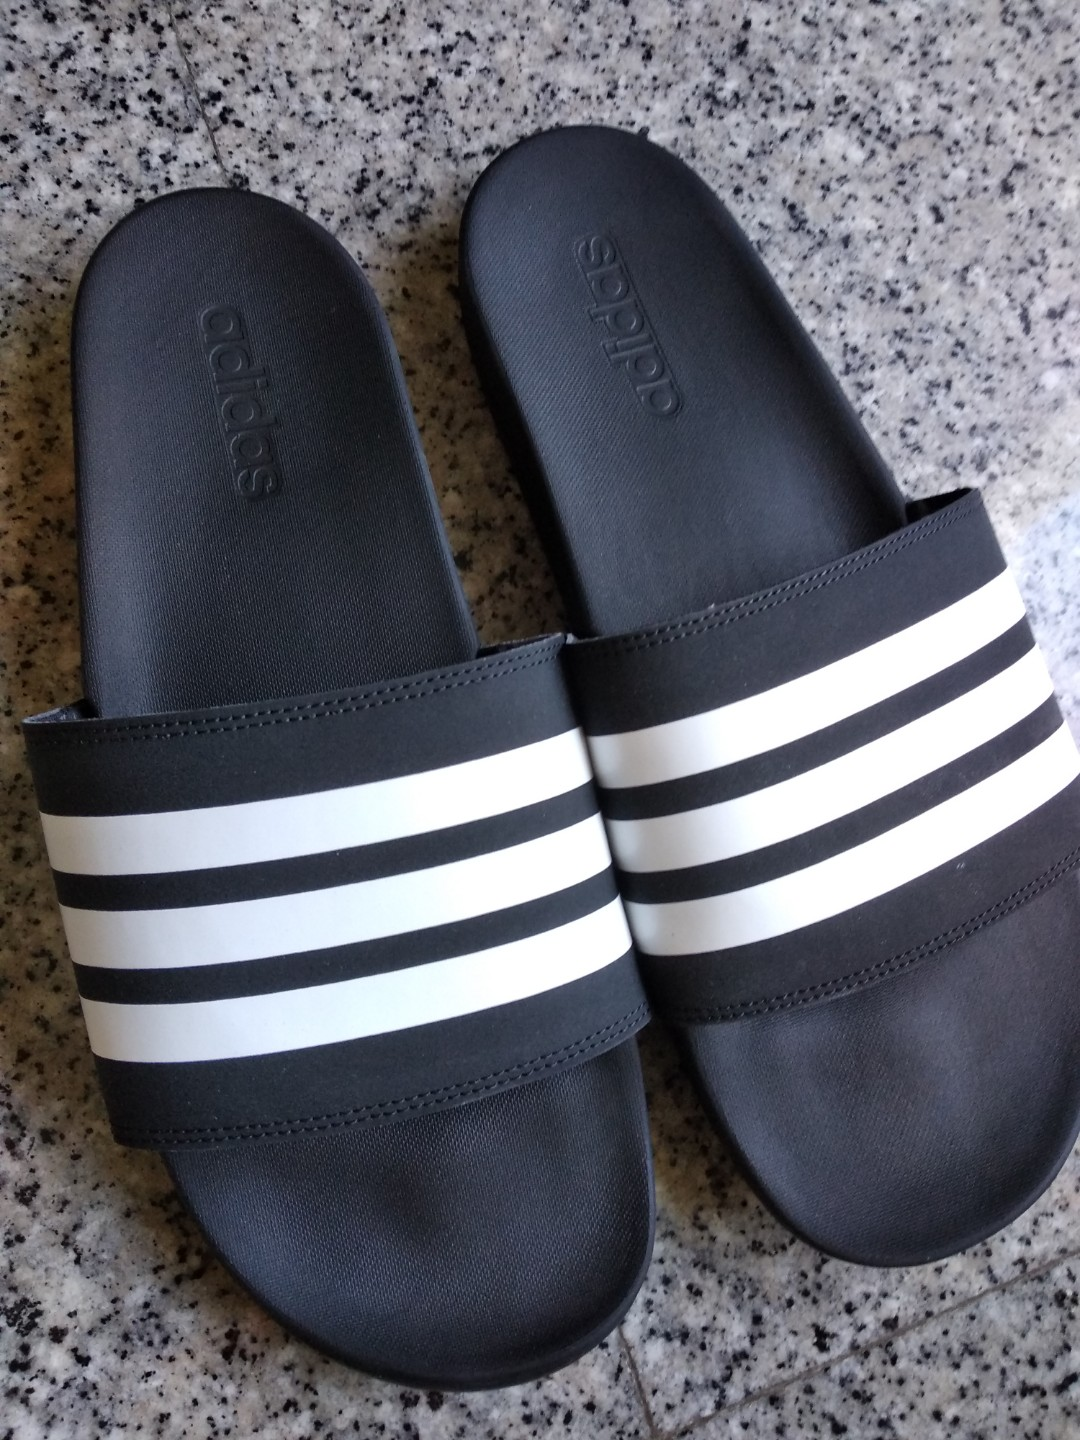 e77e424f2 Adidas Cloudfoam Slides stripes PLUS Size 12US